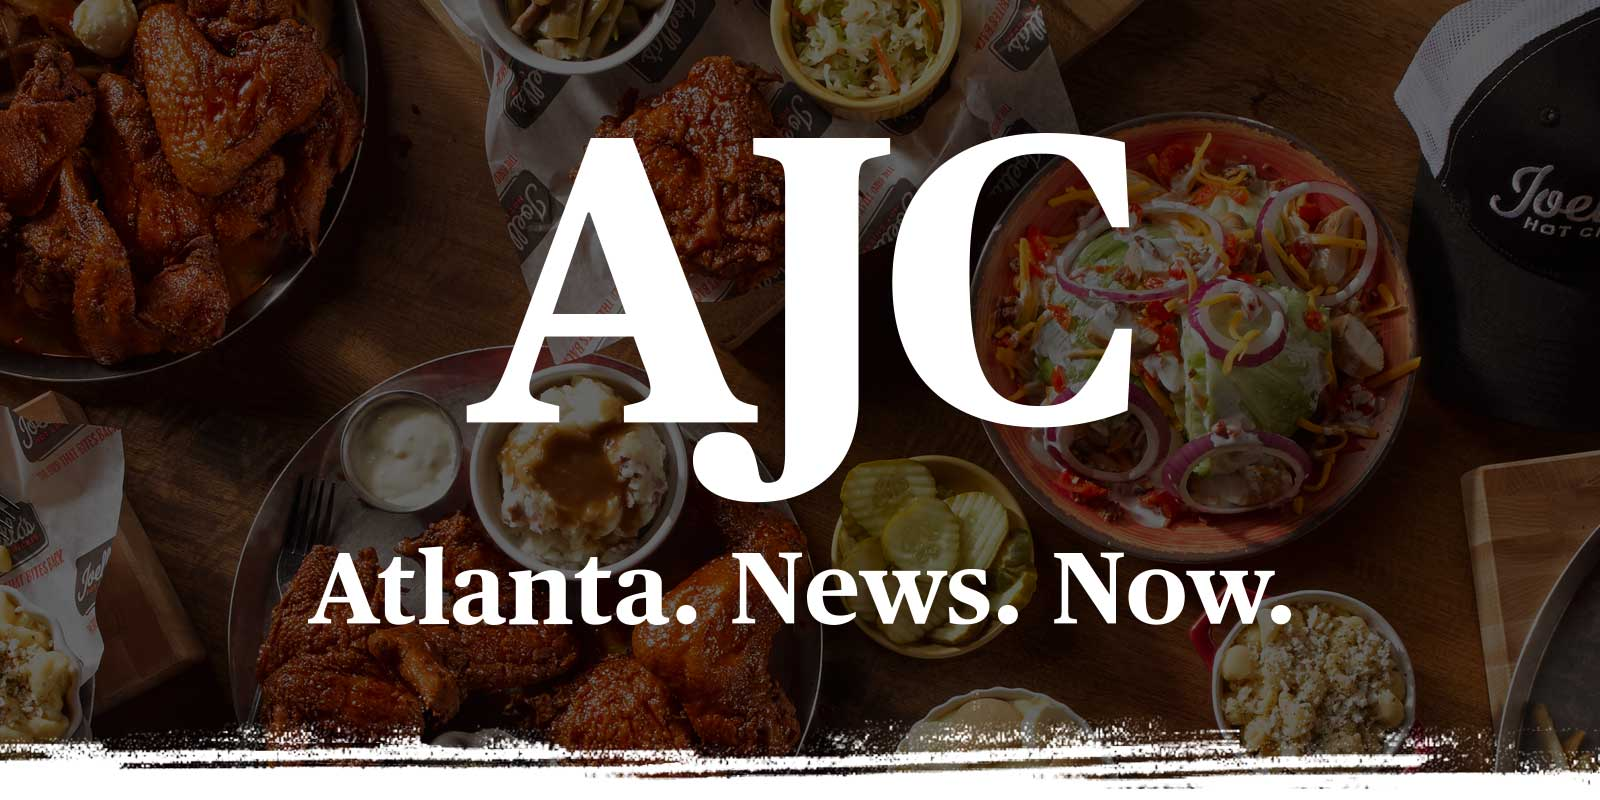 AJC logo on big table full of food background